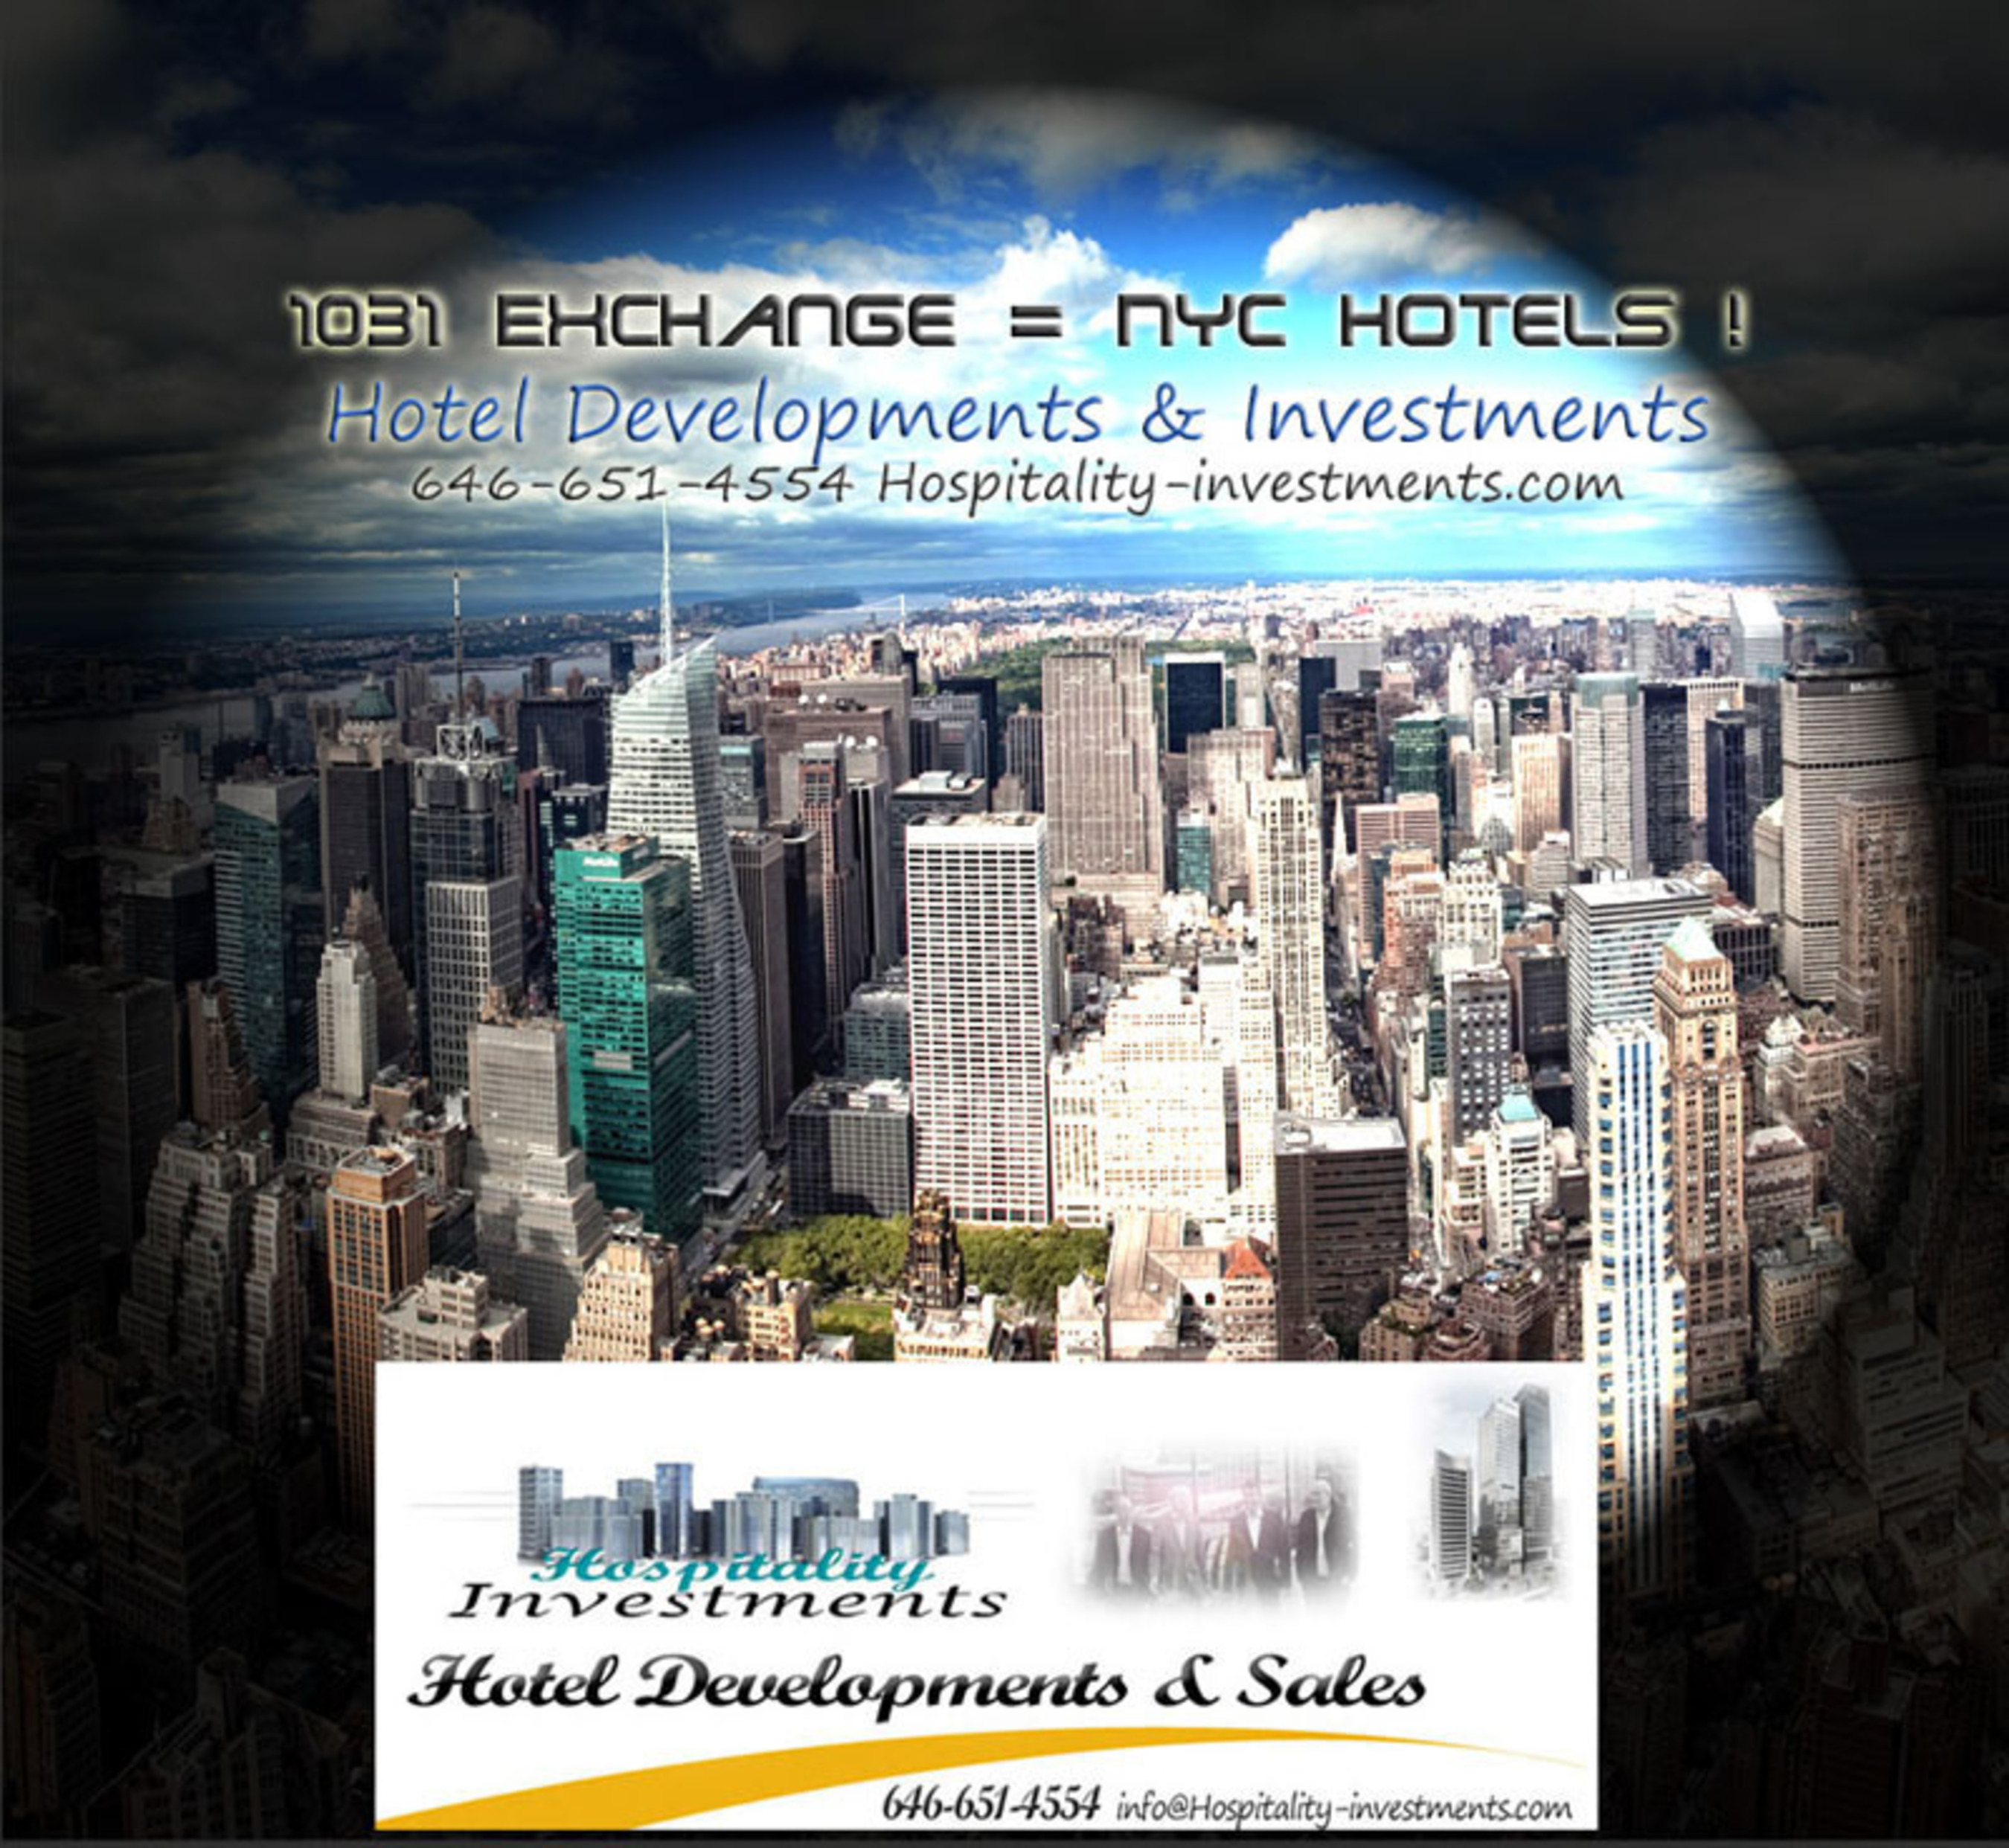 Hotel Developments in NYC.  (PRNewsFoto/Hospitality Investments and Developments)